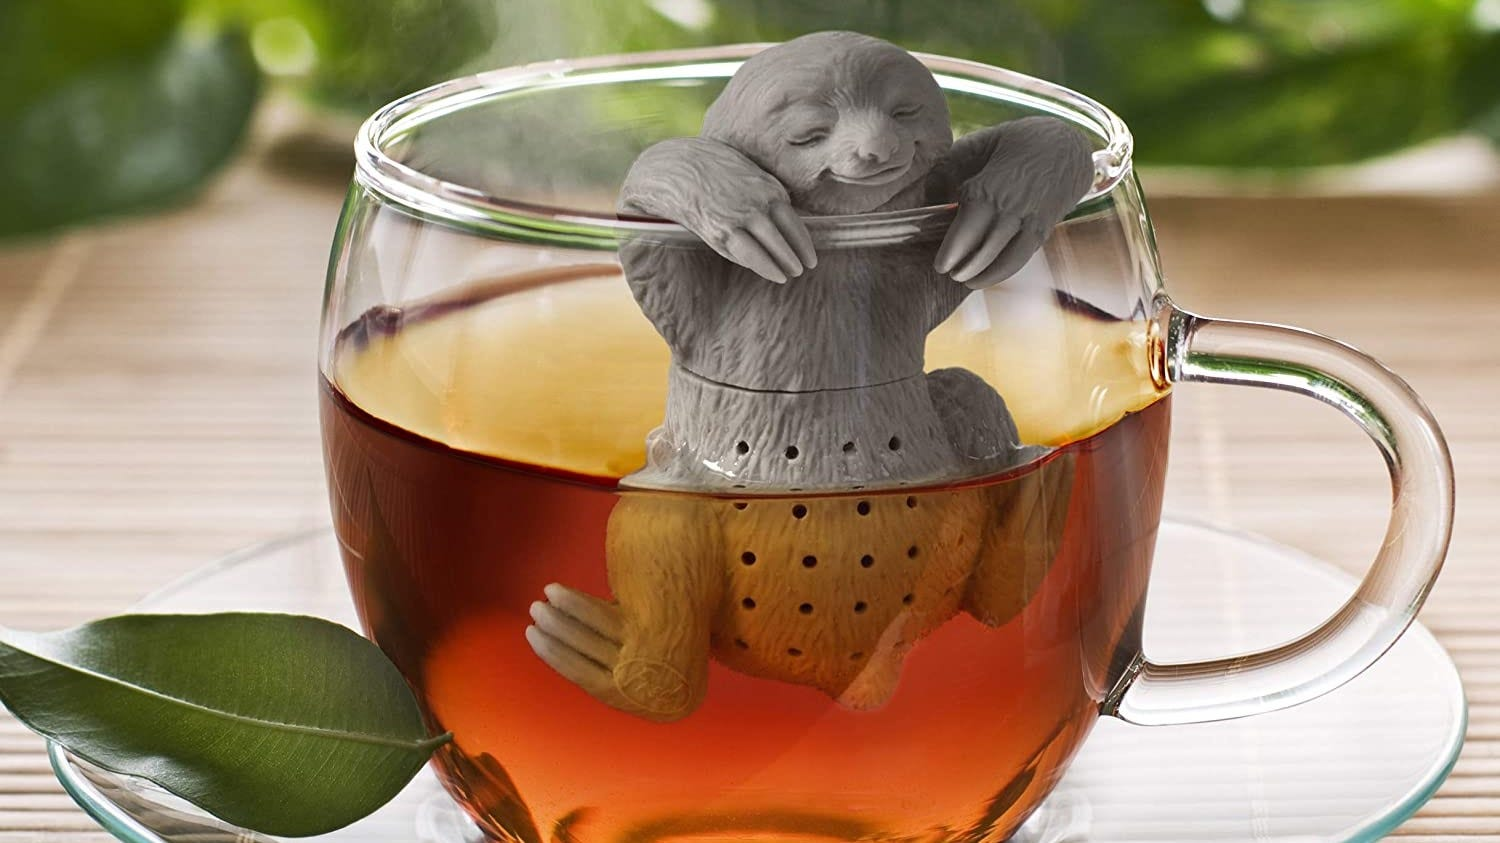 Sloth tea infuser hanging out in a cup of tea.